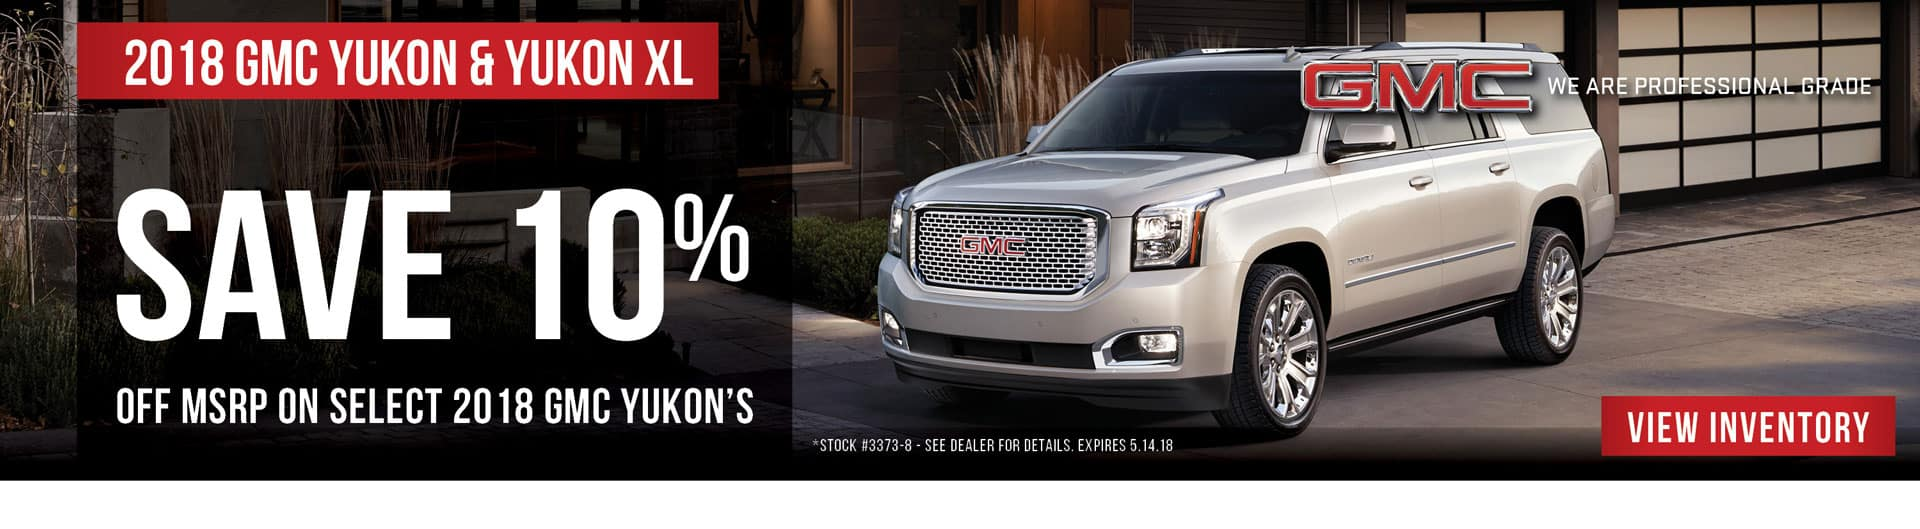 sale fort ia height width incentives pricing denali img gmc sierra new dodge near details for